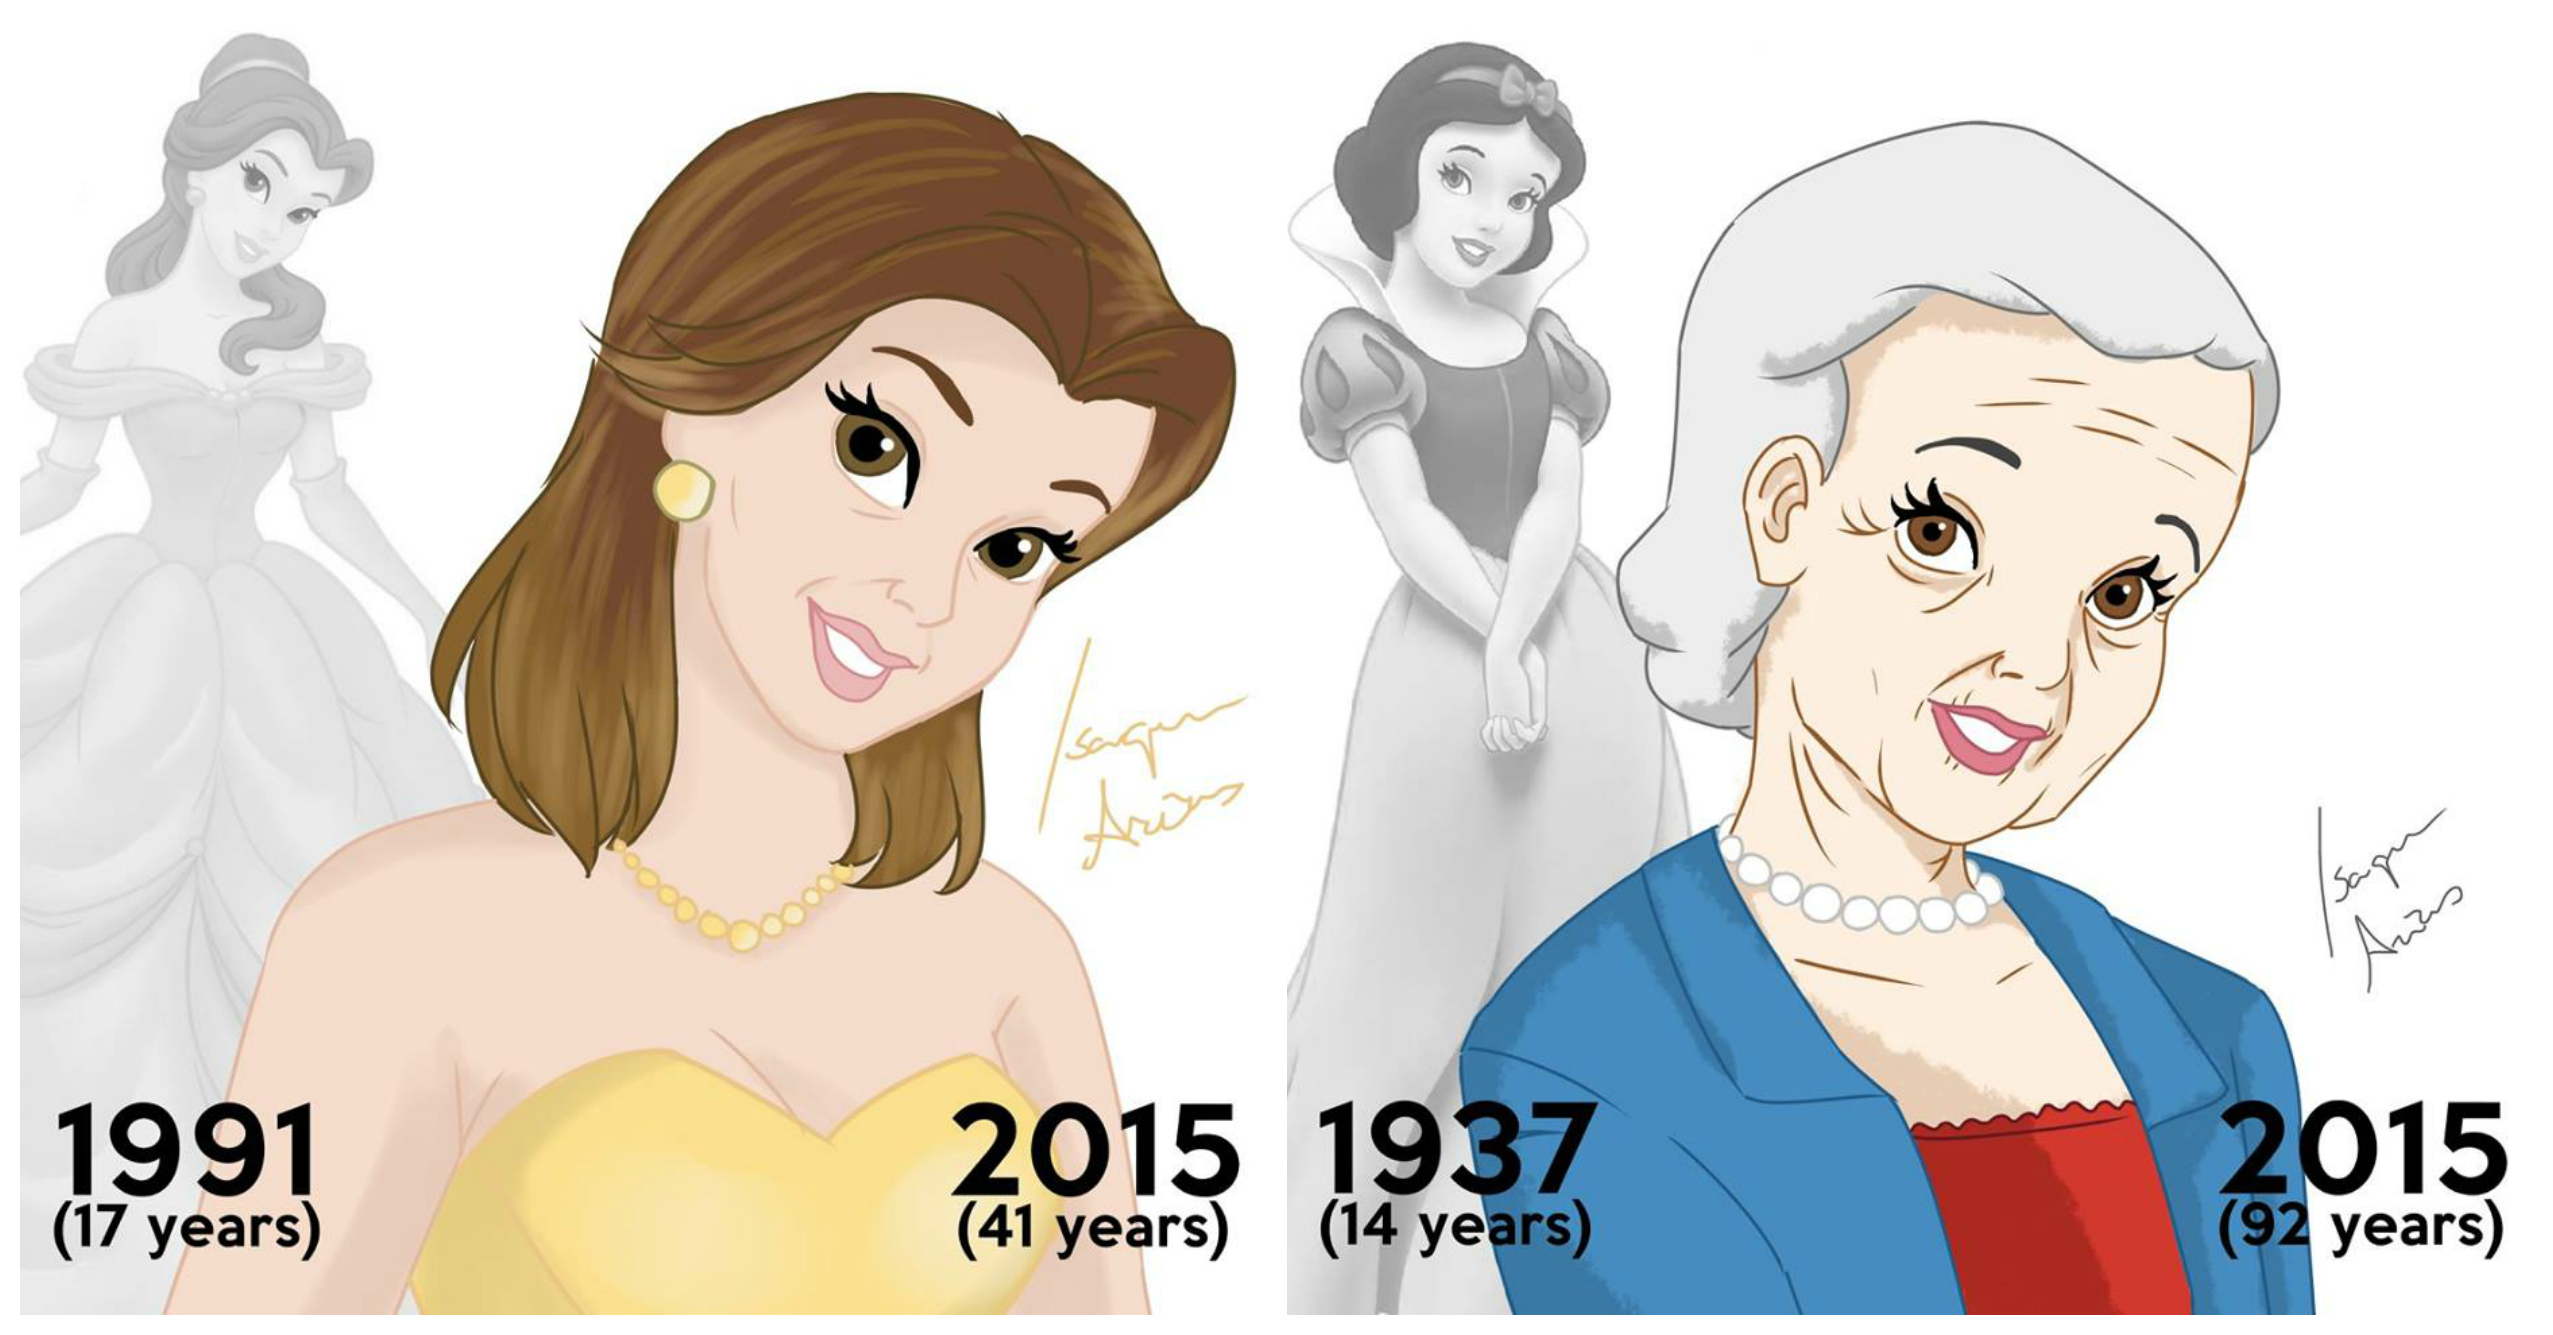 Artist re-imagines Disney princesses to show what they'd look like if they had aged since their film release